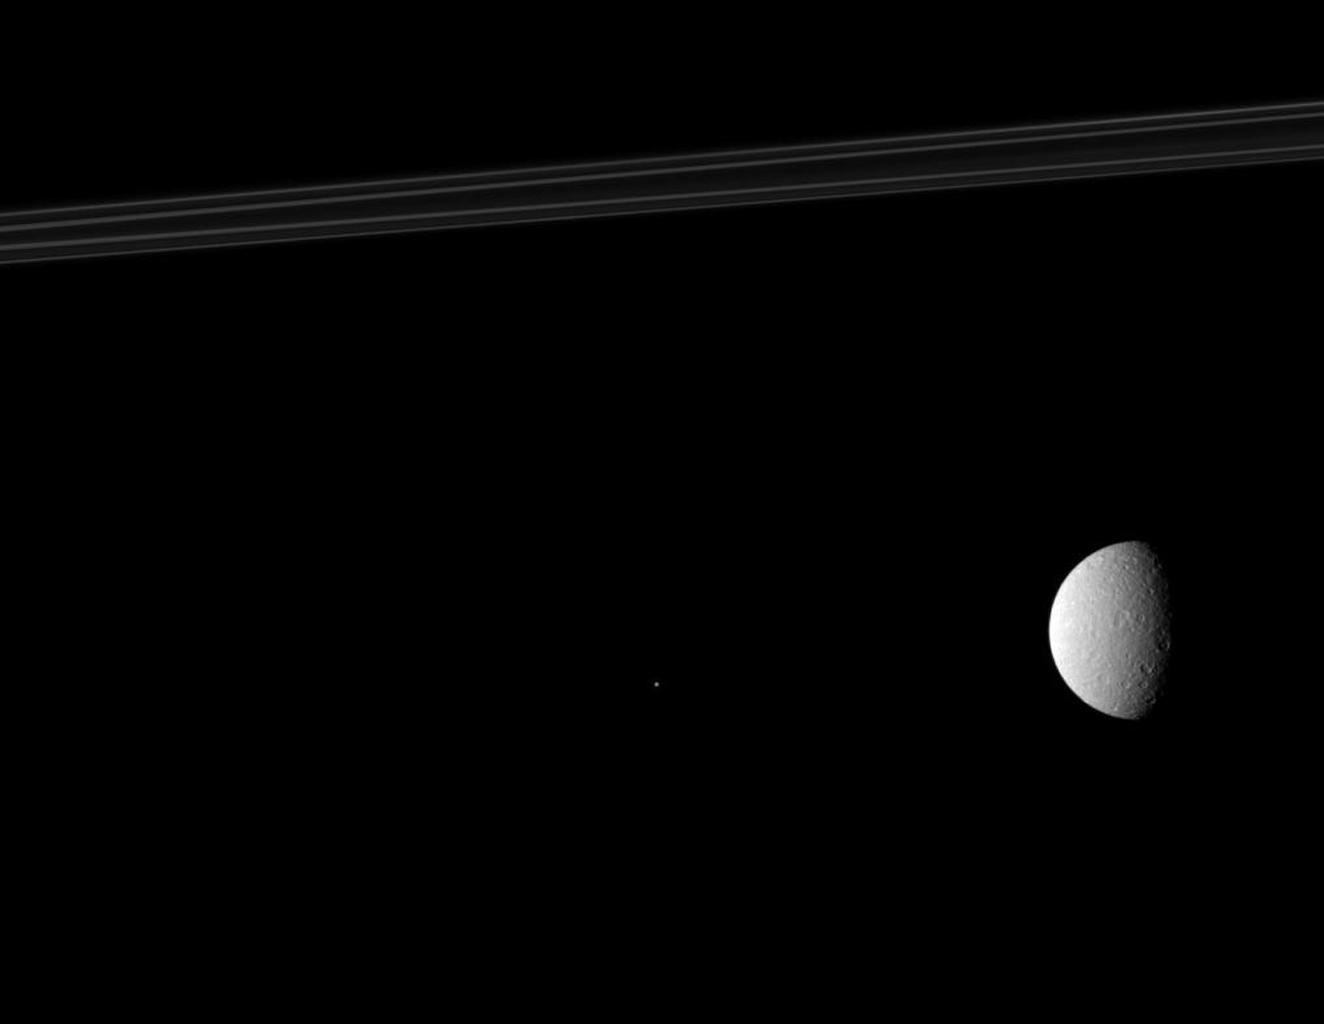 NASA's Cassini spacecraft composition features Saturn's rings (top of image), its second largest moon, Rhea (on right of image), and one of the planet's tiny moons, Telesto (near the middle of image) appears as a bright speck.